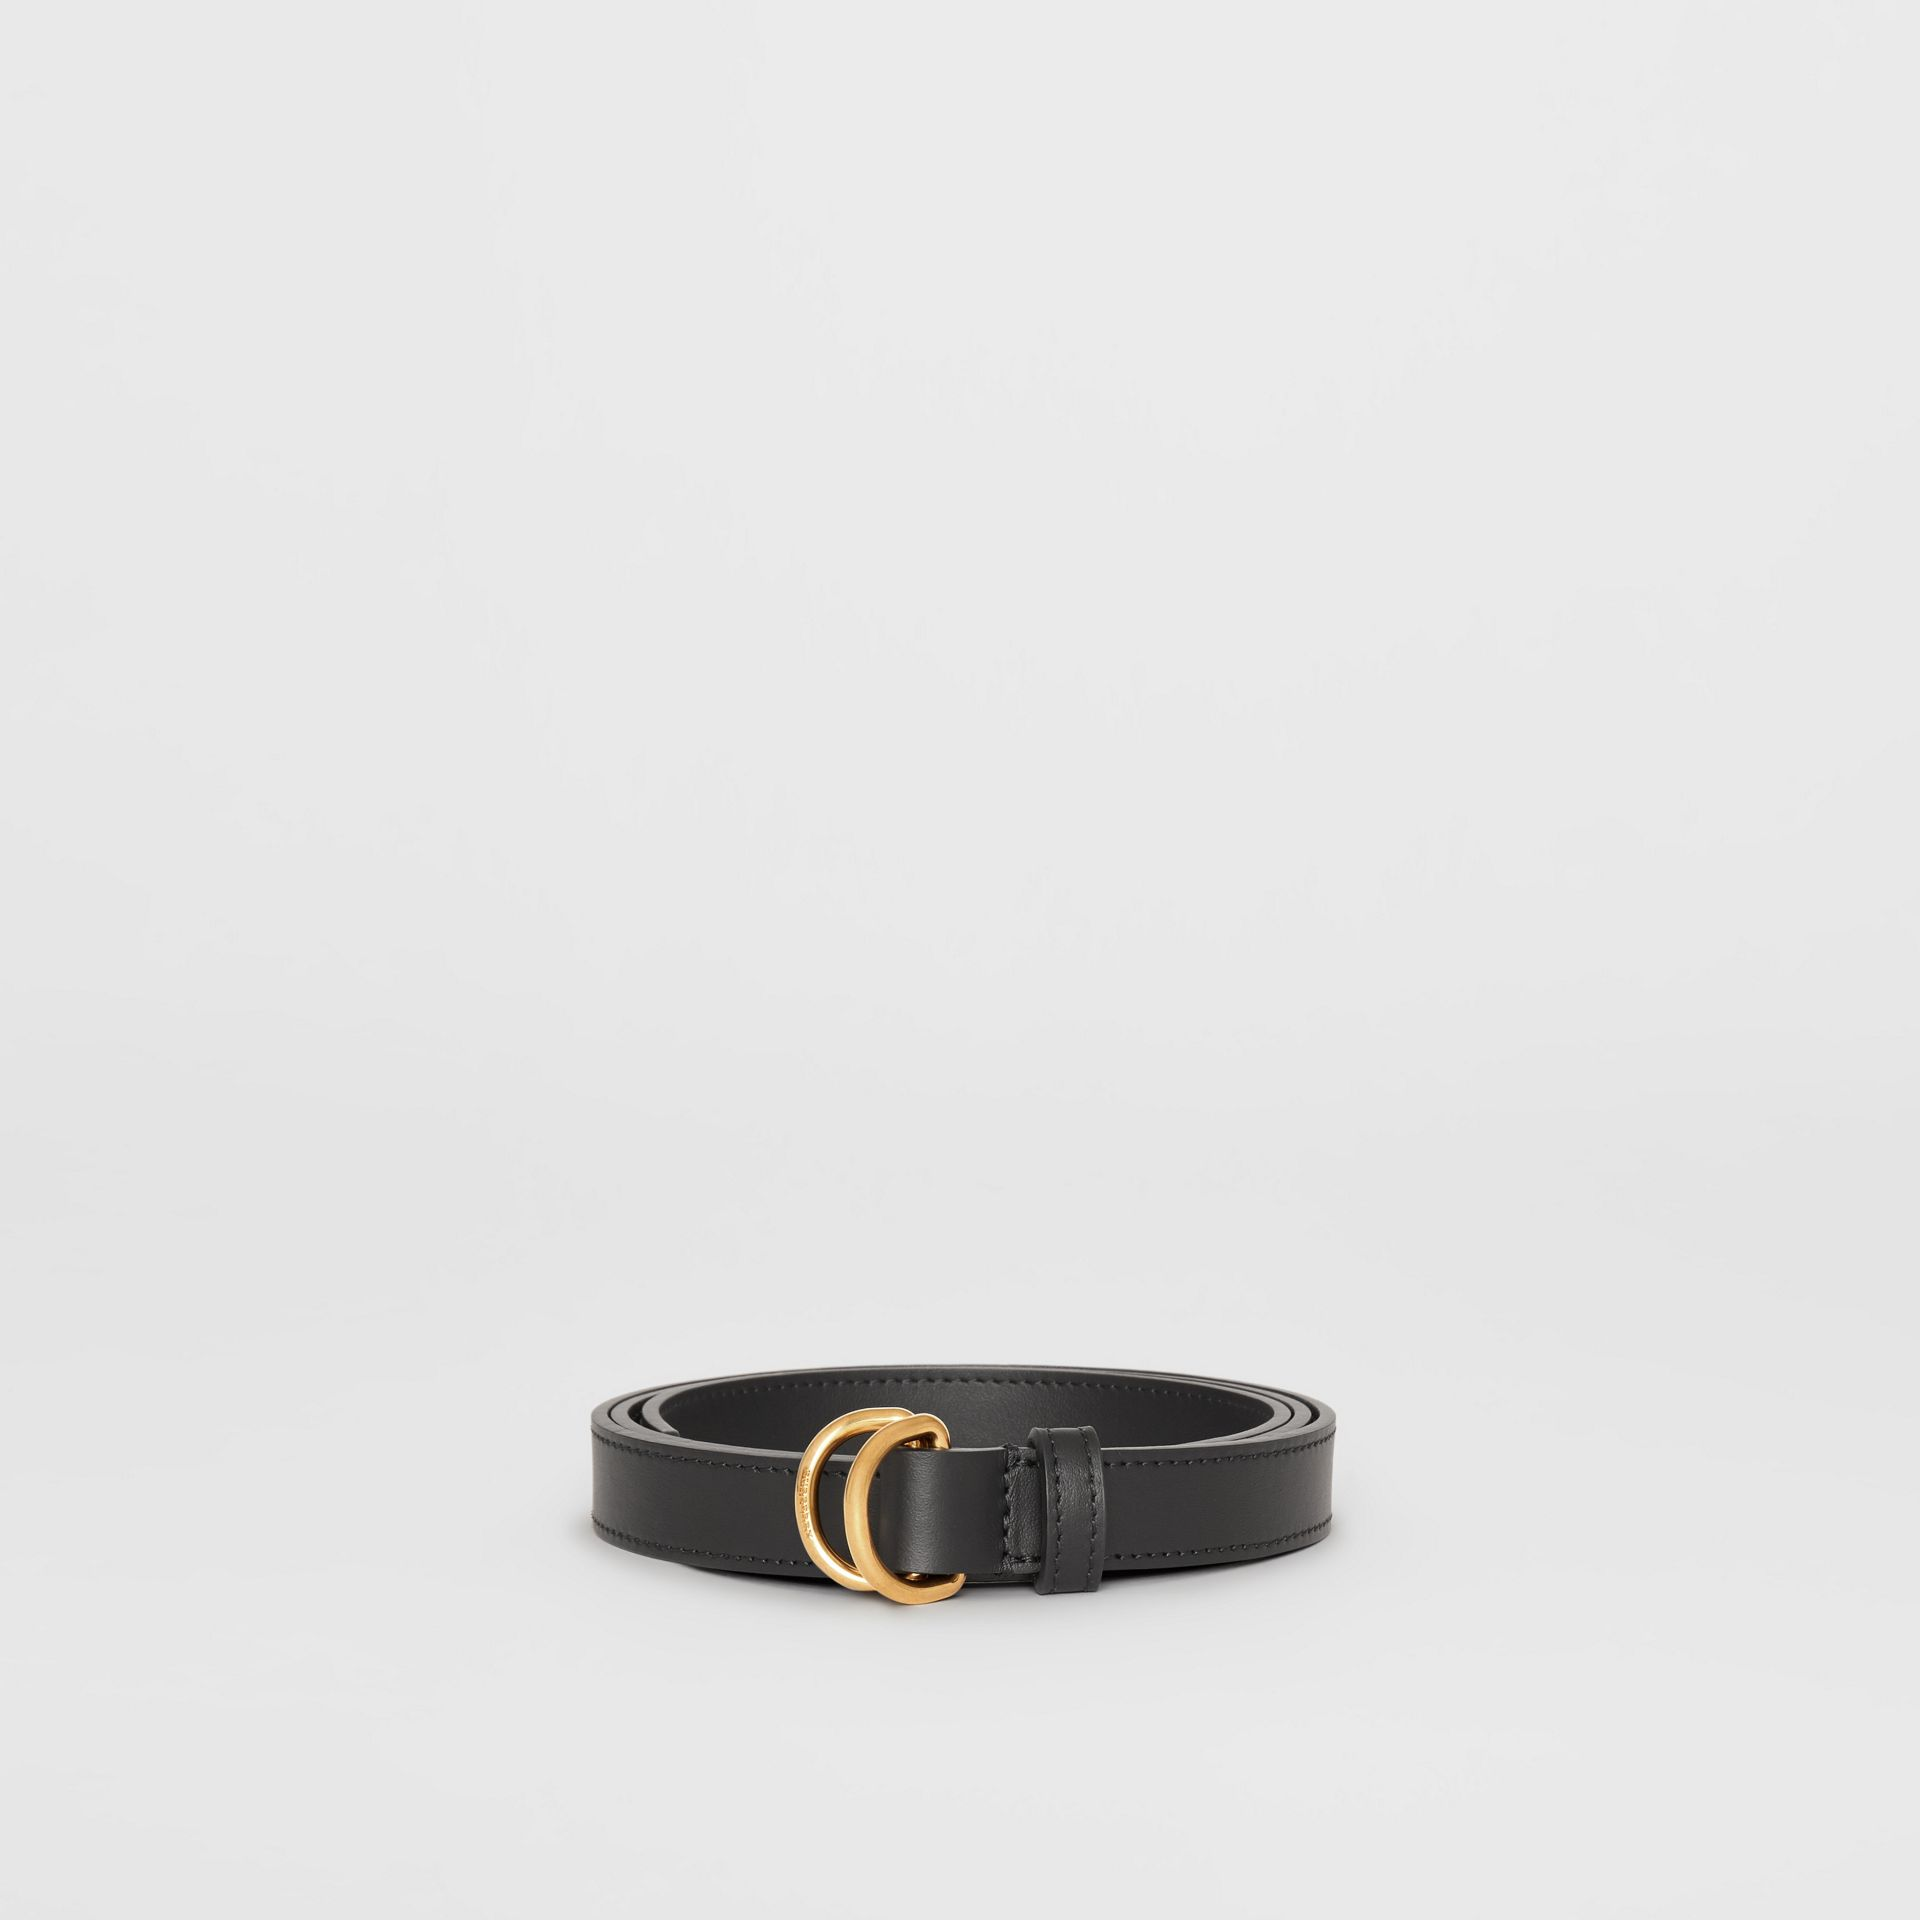 Slim Leather Double D-ring Belt in Black - Women | Burberry Canada - gallery image 3